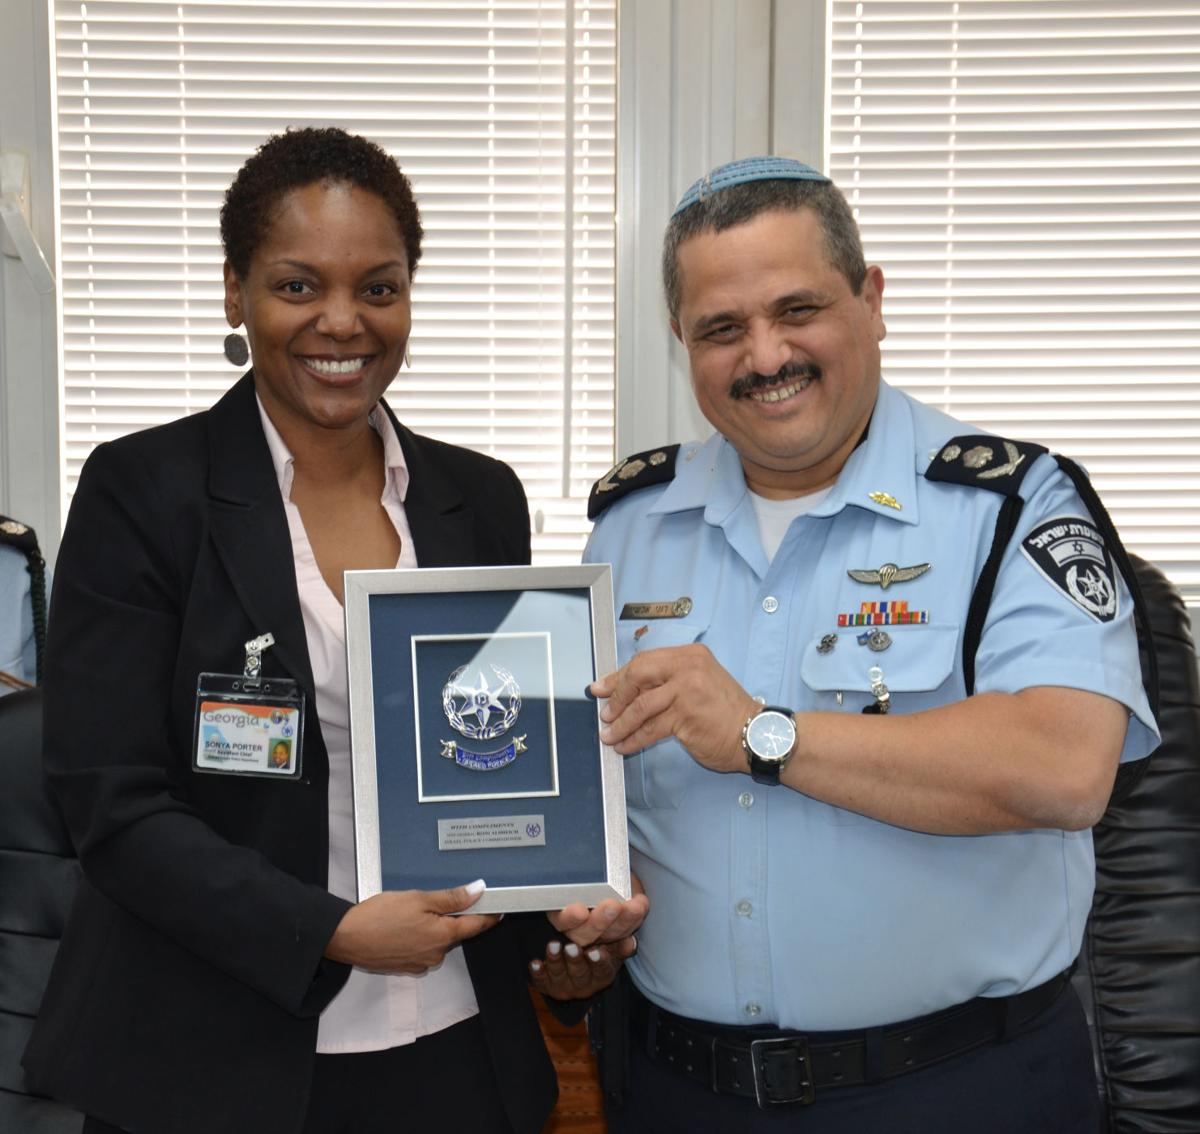 Chief S. Porter, DeKalb County Police, Georgia with Israeli Police Commissioner